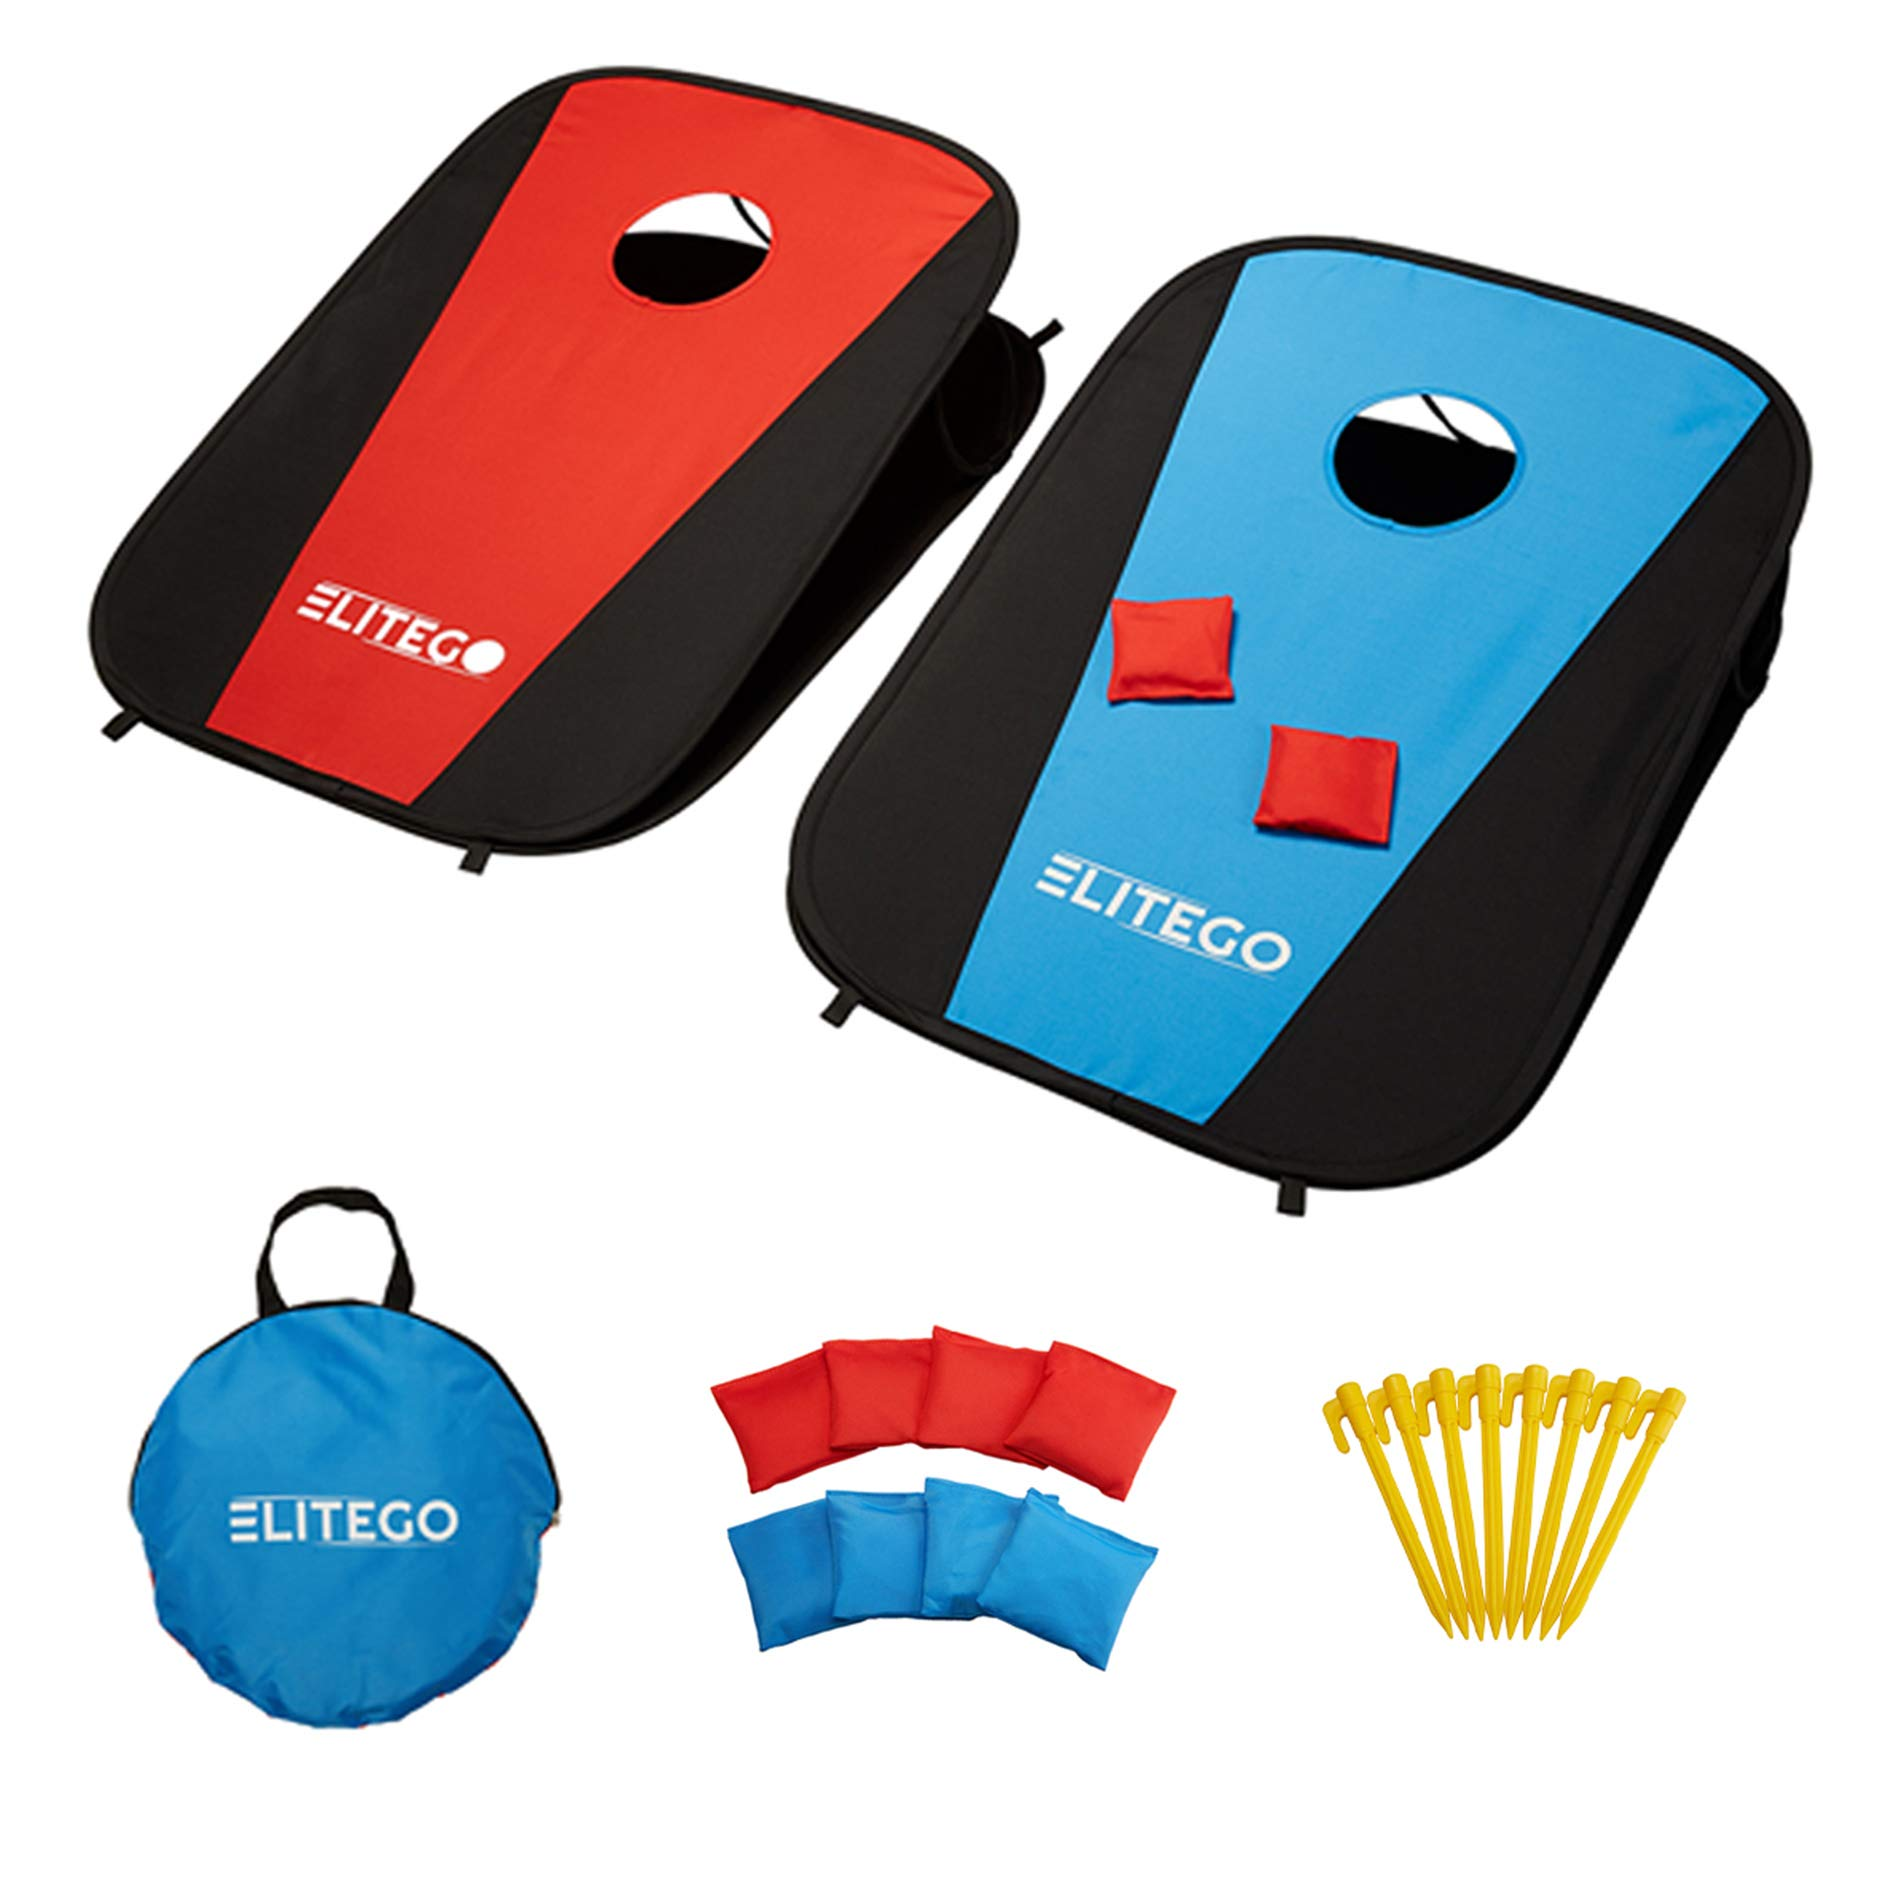 EliteGo Collapsible Portable Cornhole Boards Game Set with 8 Cornhole Bean Bags - (3 x 2 feet) (Red/Blue) by EliteGo